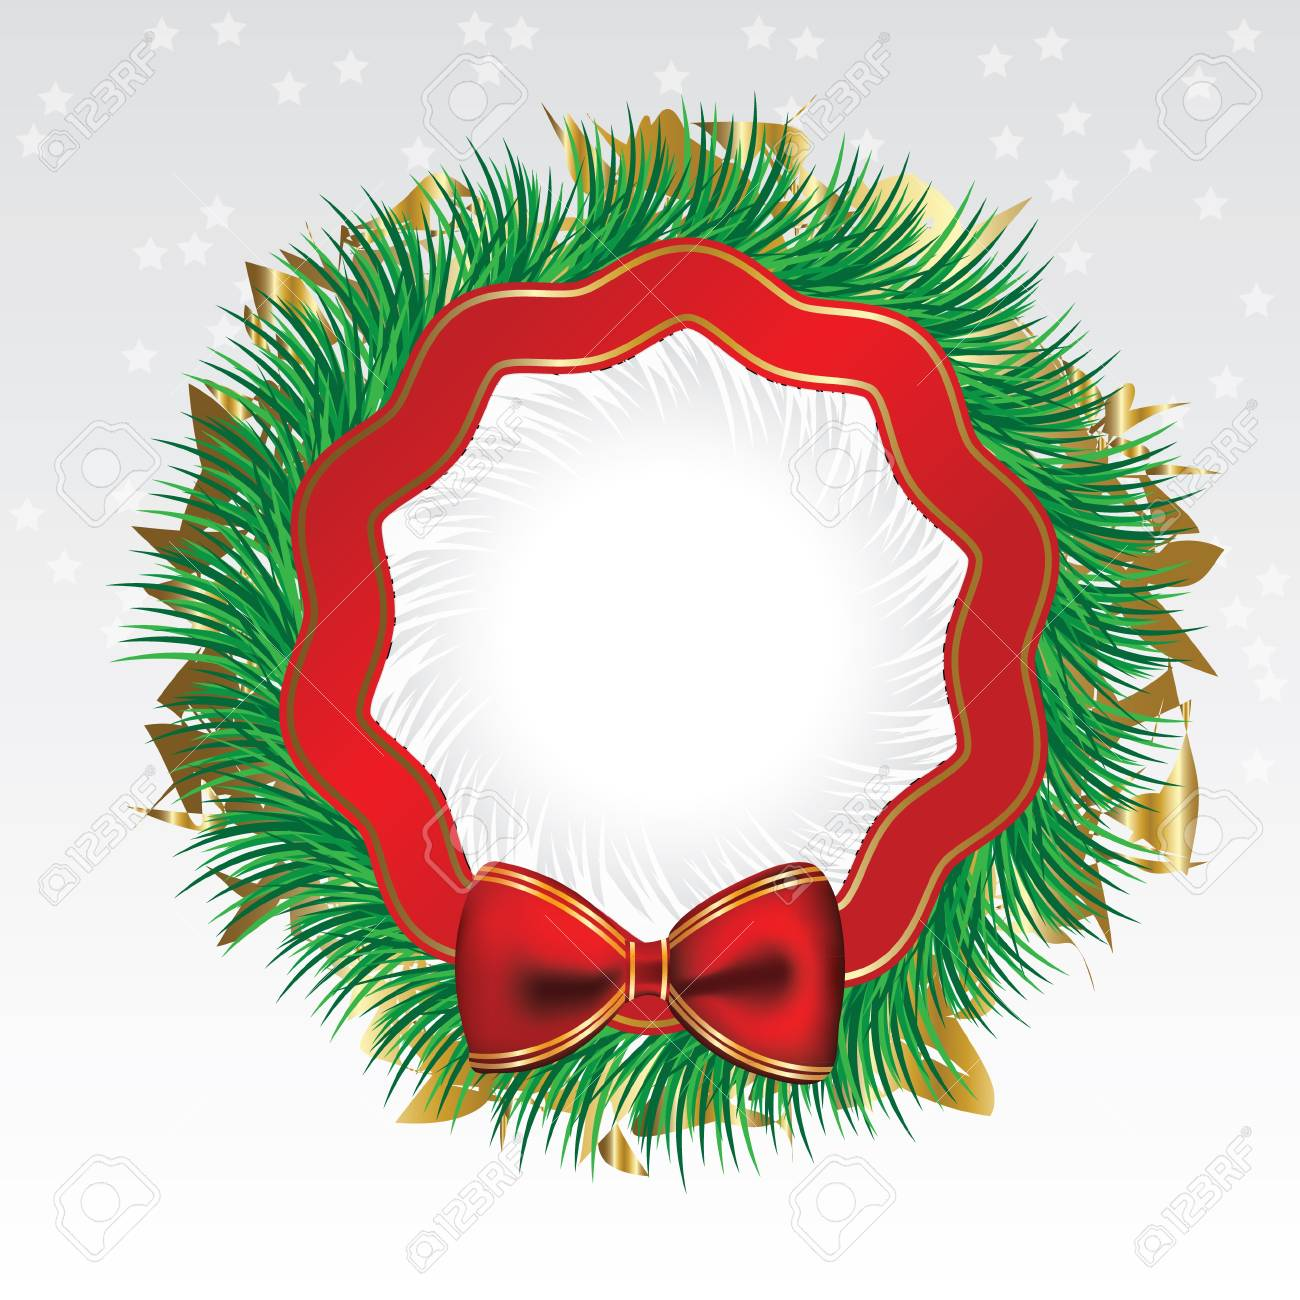 Pine Christmas chaplet with bow and spangles Stock Vector - 16169331